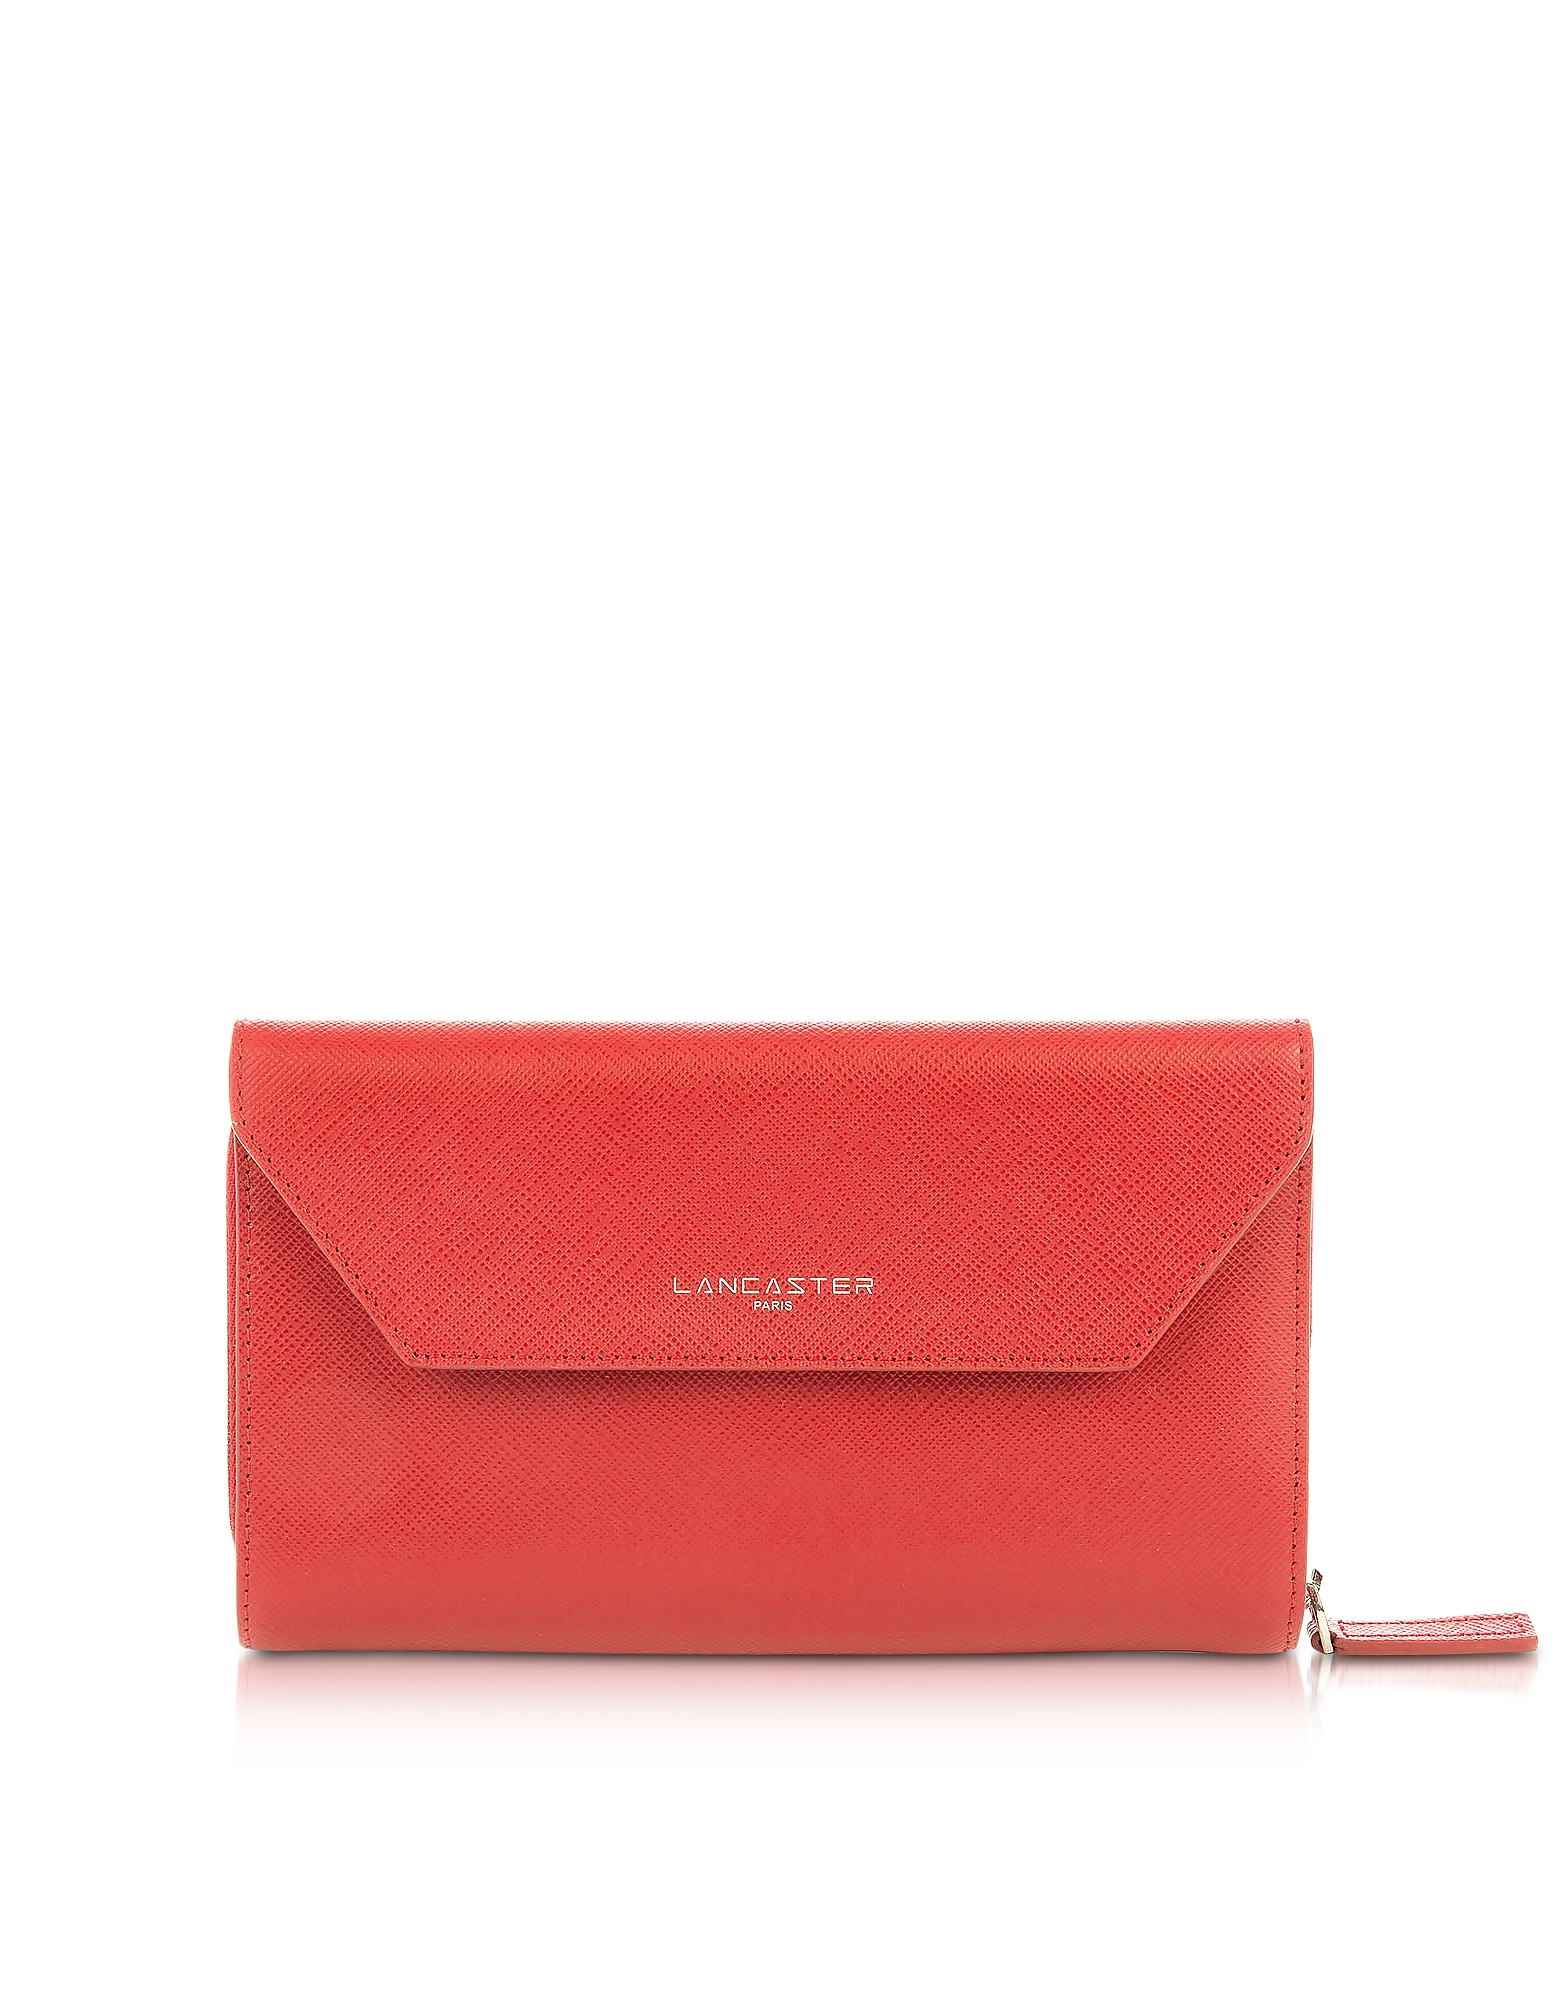 Lancaster Paris Handbags, Adele Leather Continental Wallet